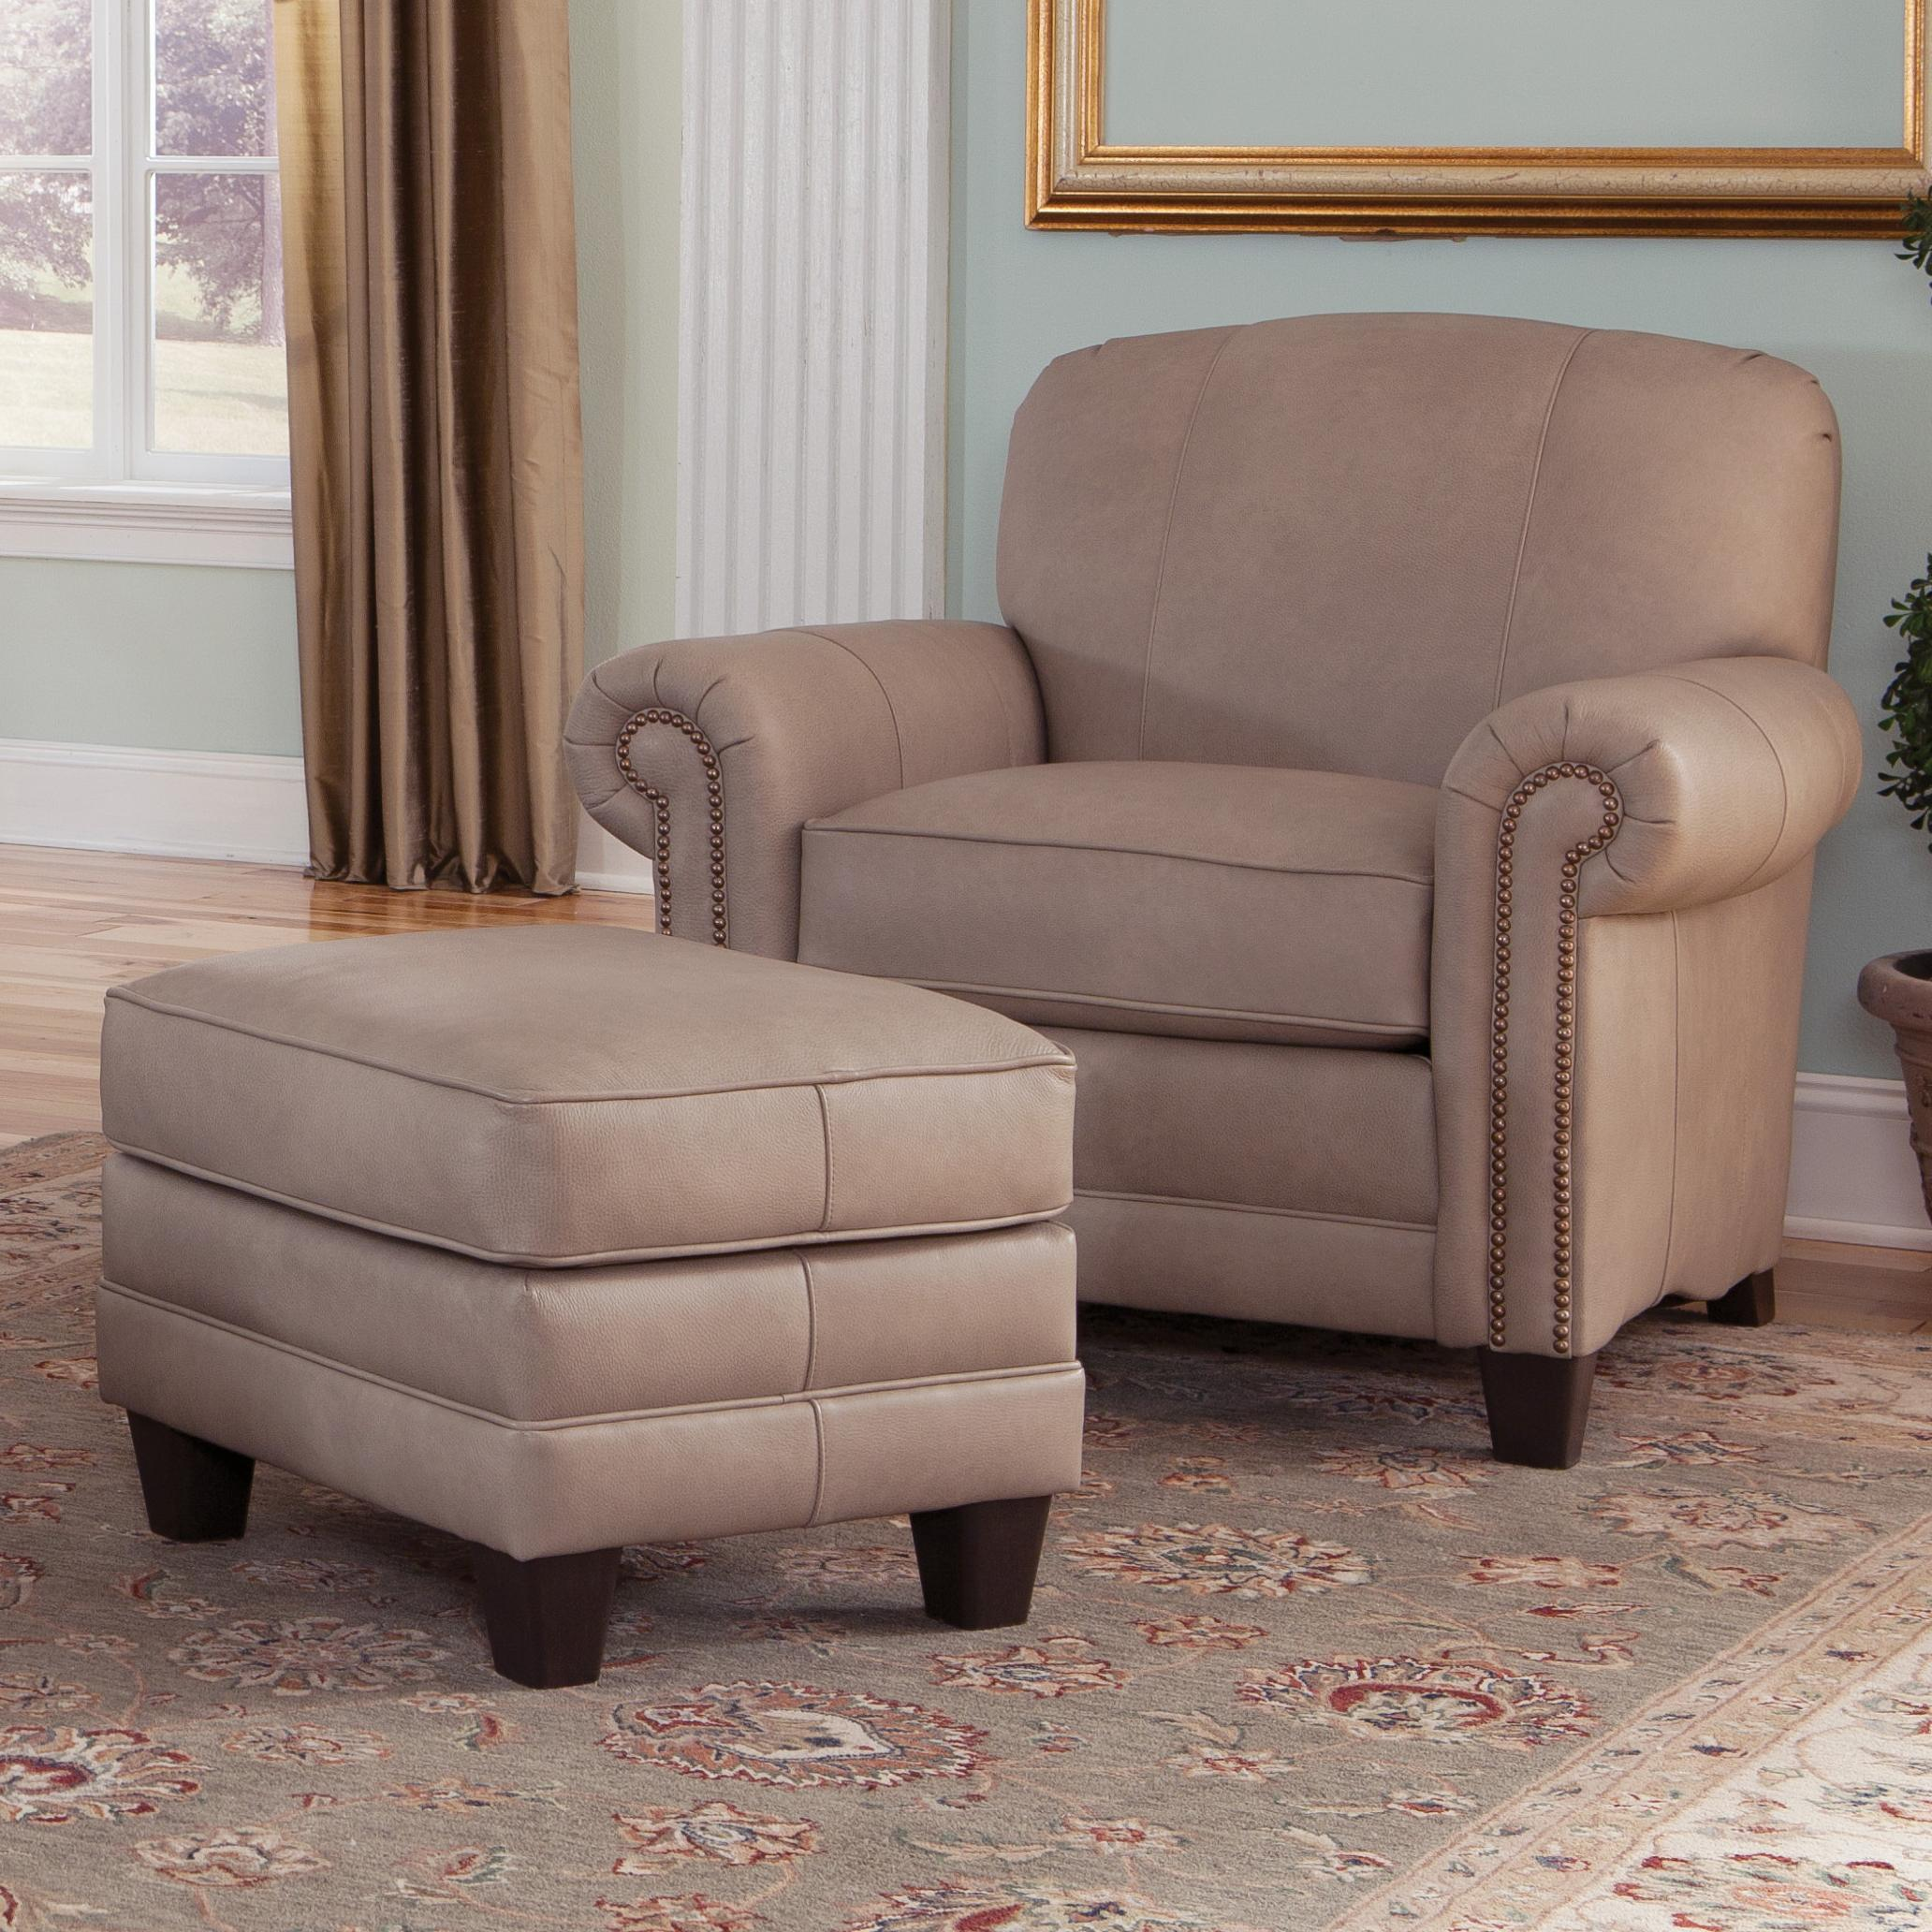 397 Chair and Ottman by Smith Brothers at Rooms for Less